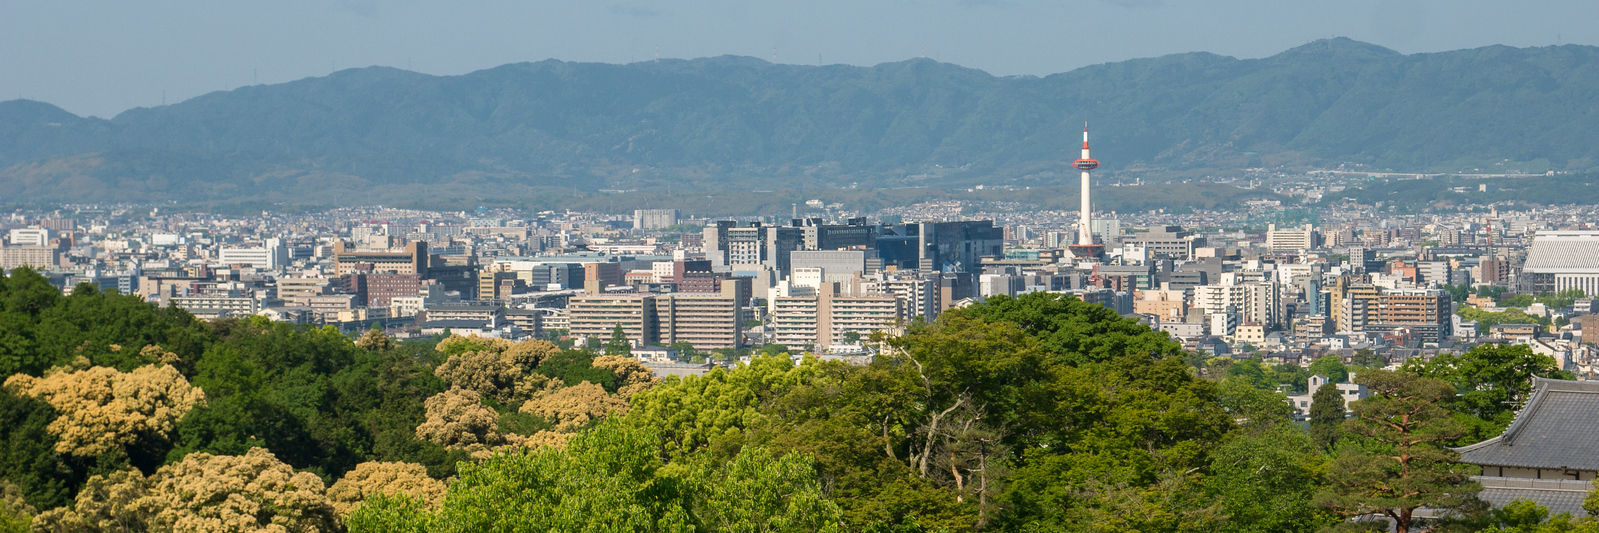 Views of Kyoto from Kiyomizu-dera in Kyoto.